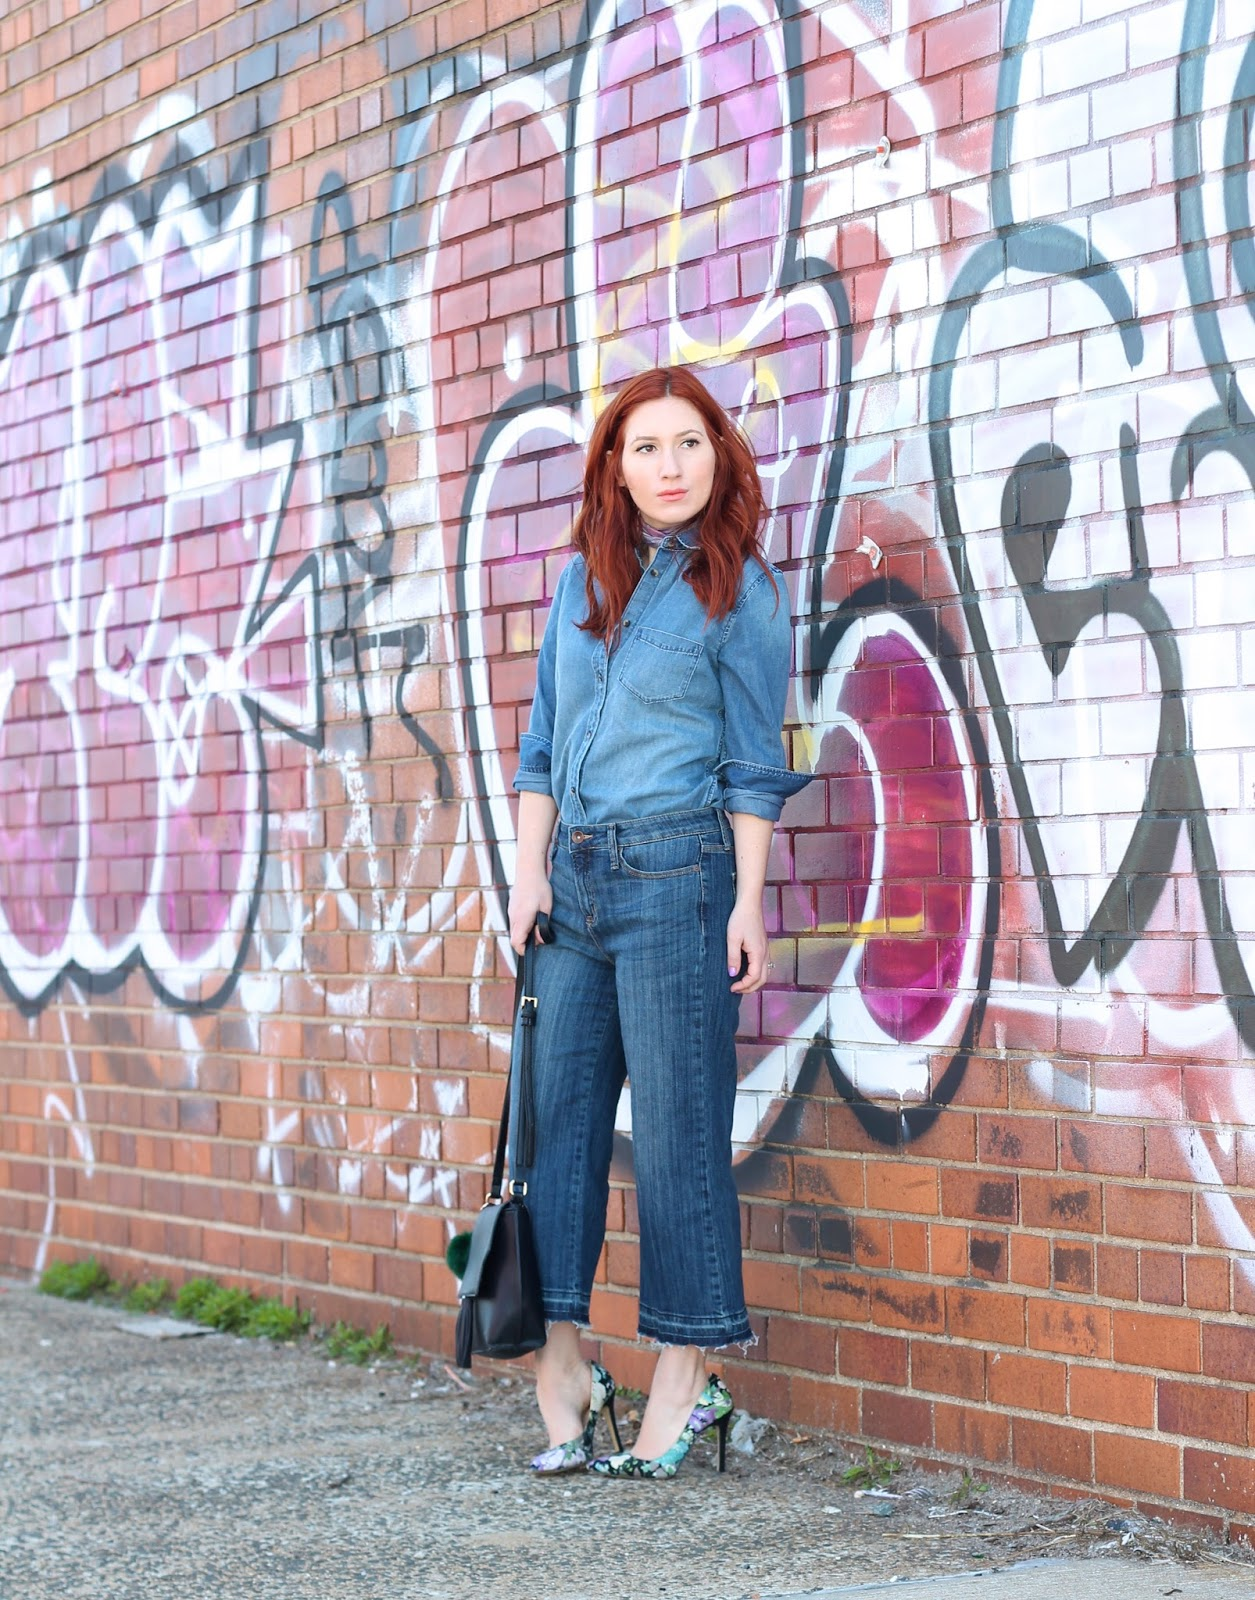 culottes, how to wear culottes, easy culotte style, easy culotte outfits, 70s inspired outfit ideas, denim on denim outfits, denim on denim, denim, outfits, style,  fashion blogger, red head fashion blogger.